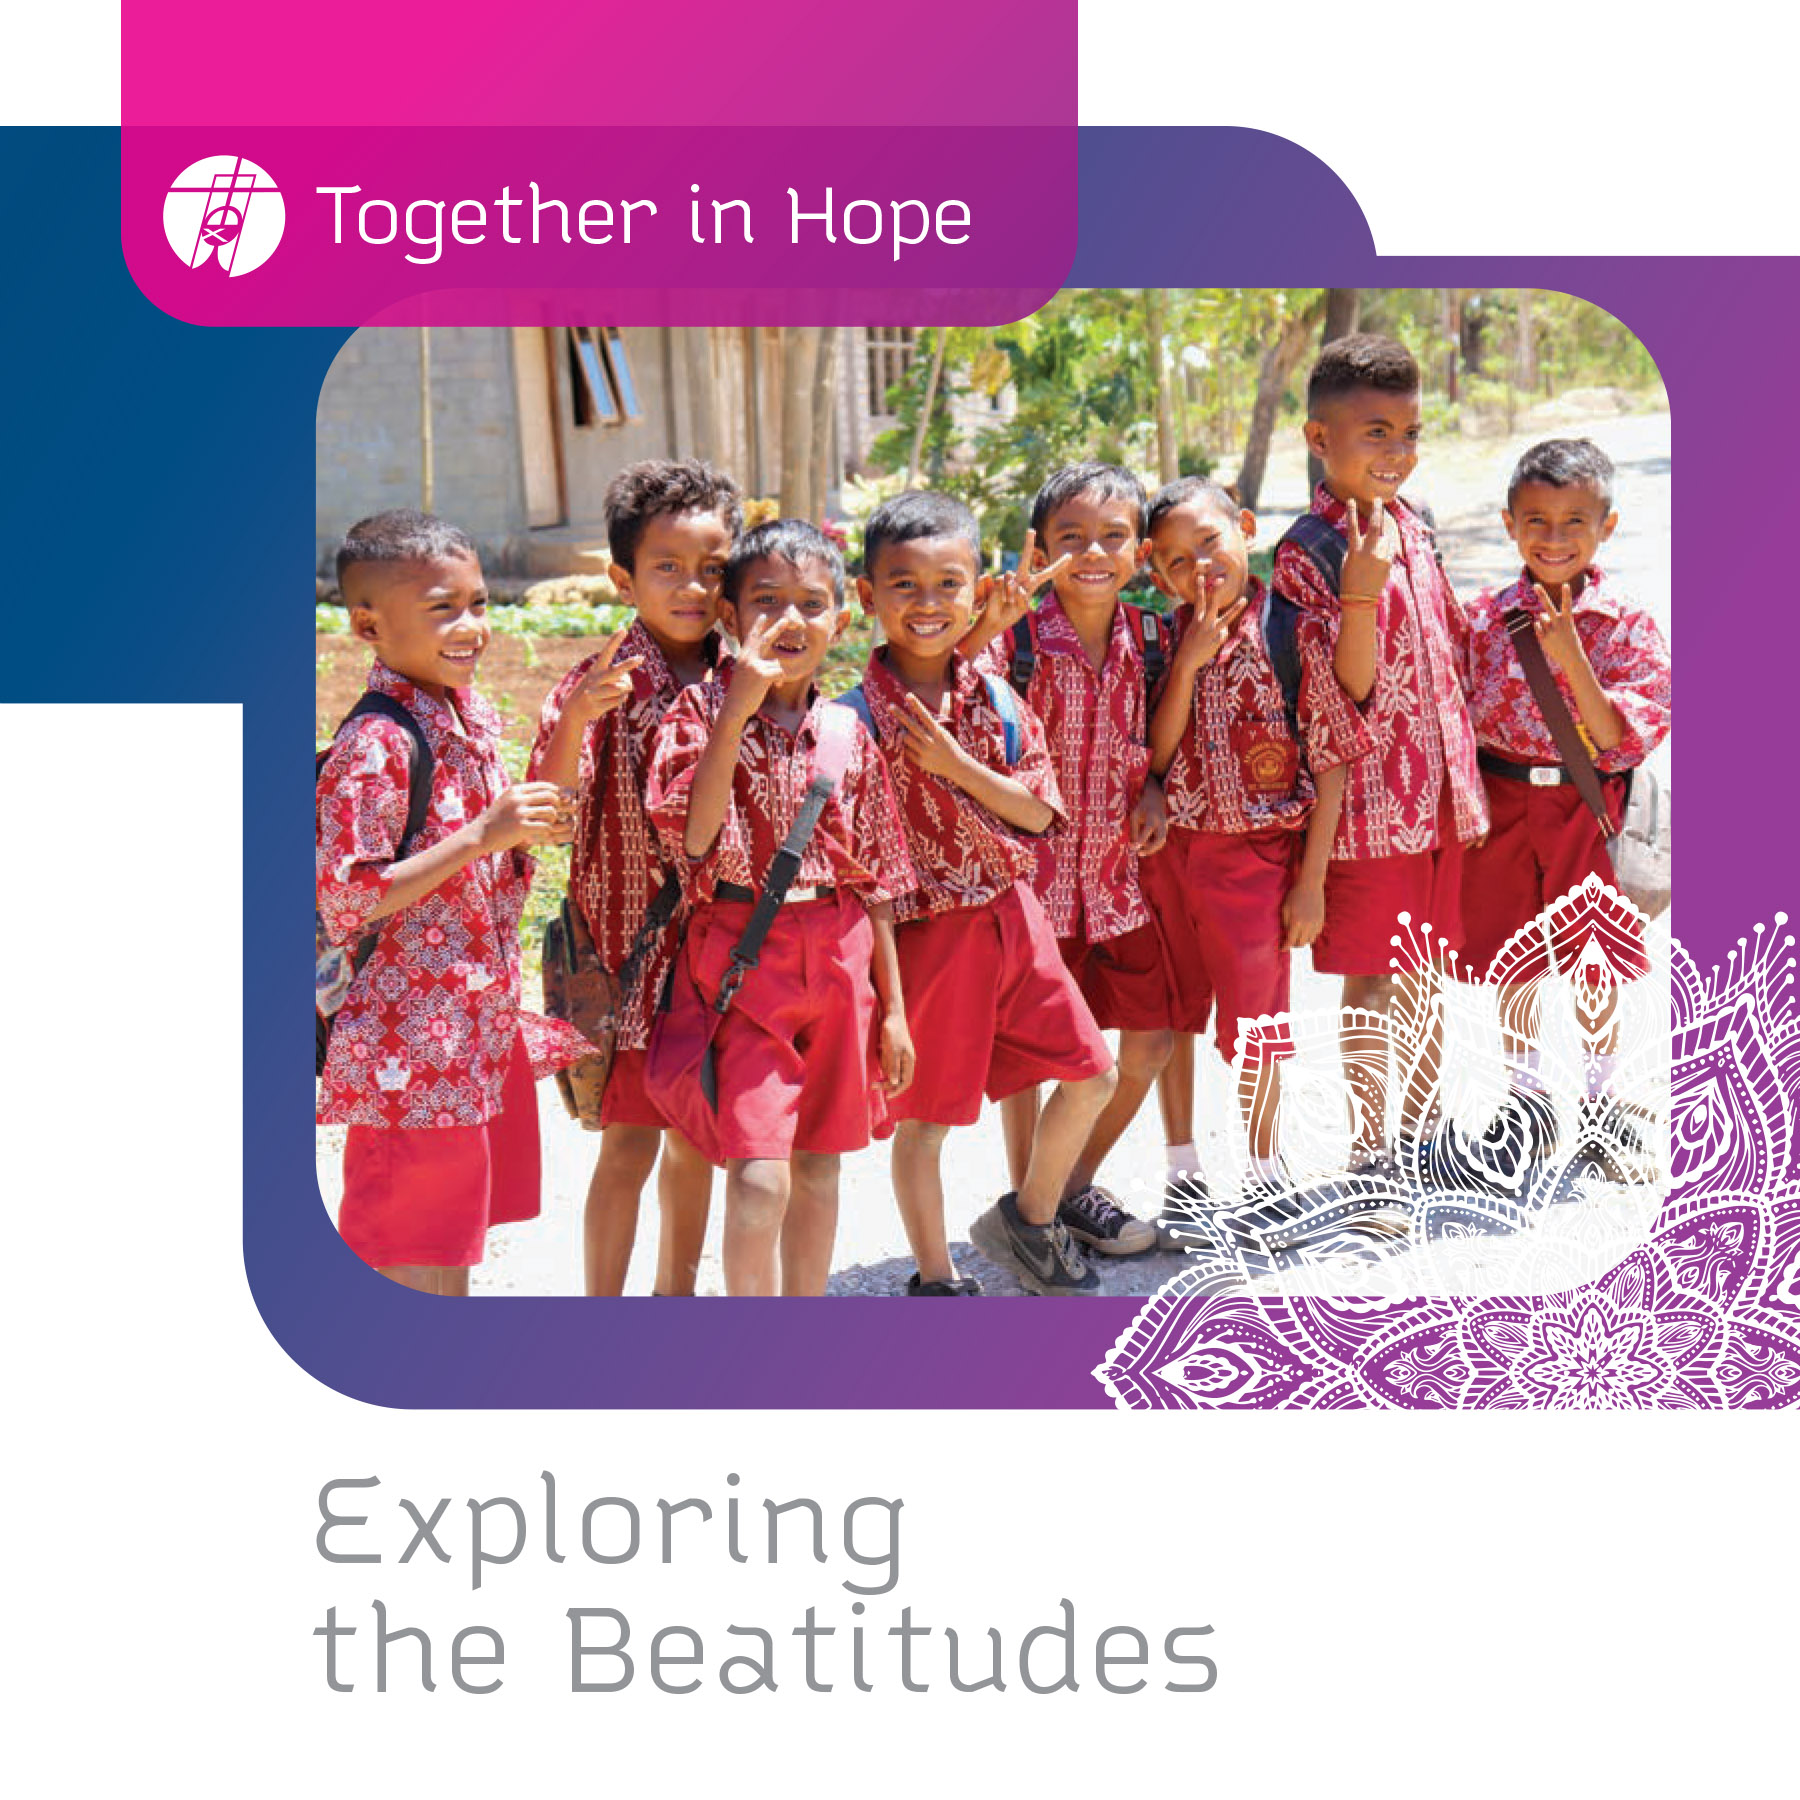 Together_in_Hope_Exploring_the_Beatitudes_DailyDevotional.jpg